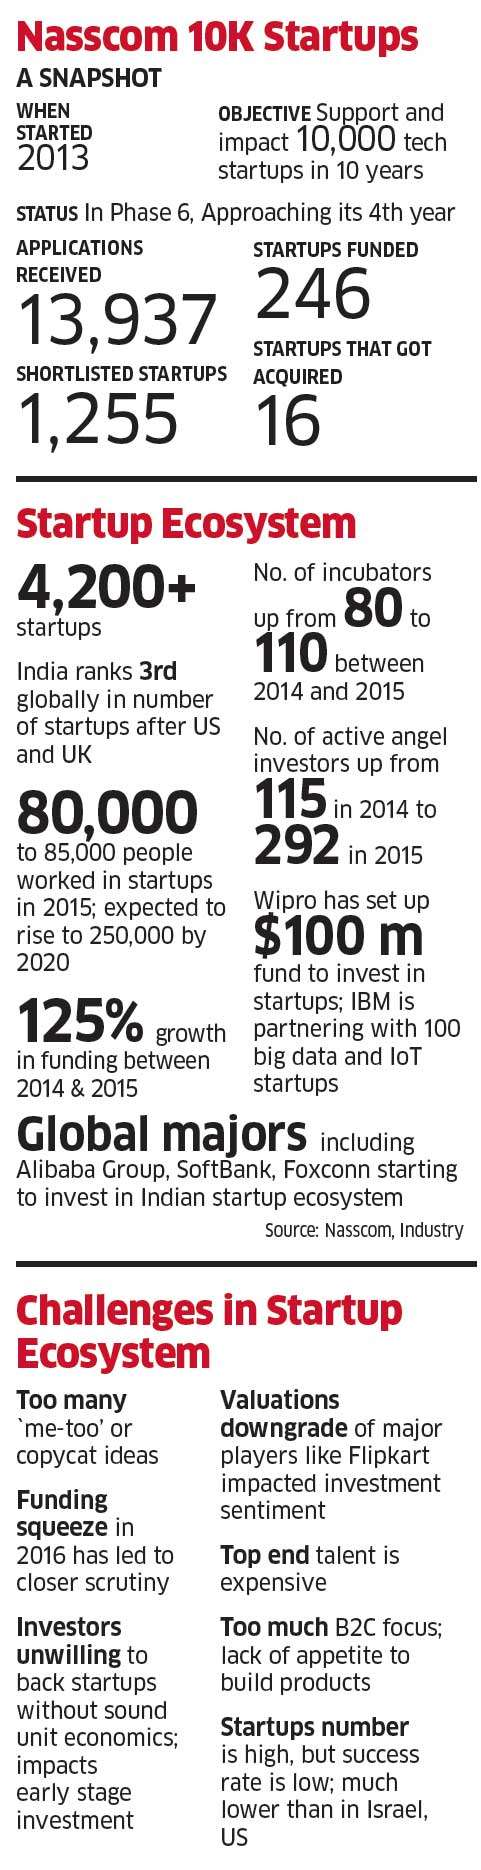 Why Nasscom 10K Startups - backed by Google, Microsoft, IBM - has had mixed success in India